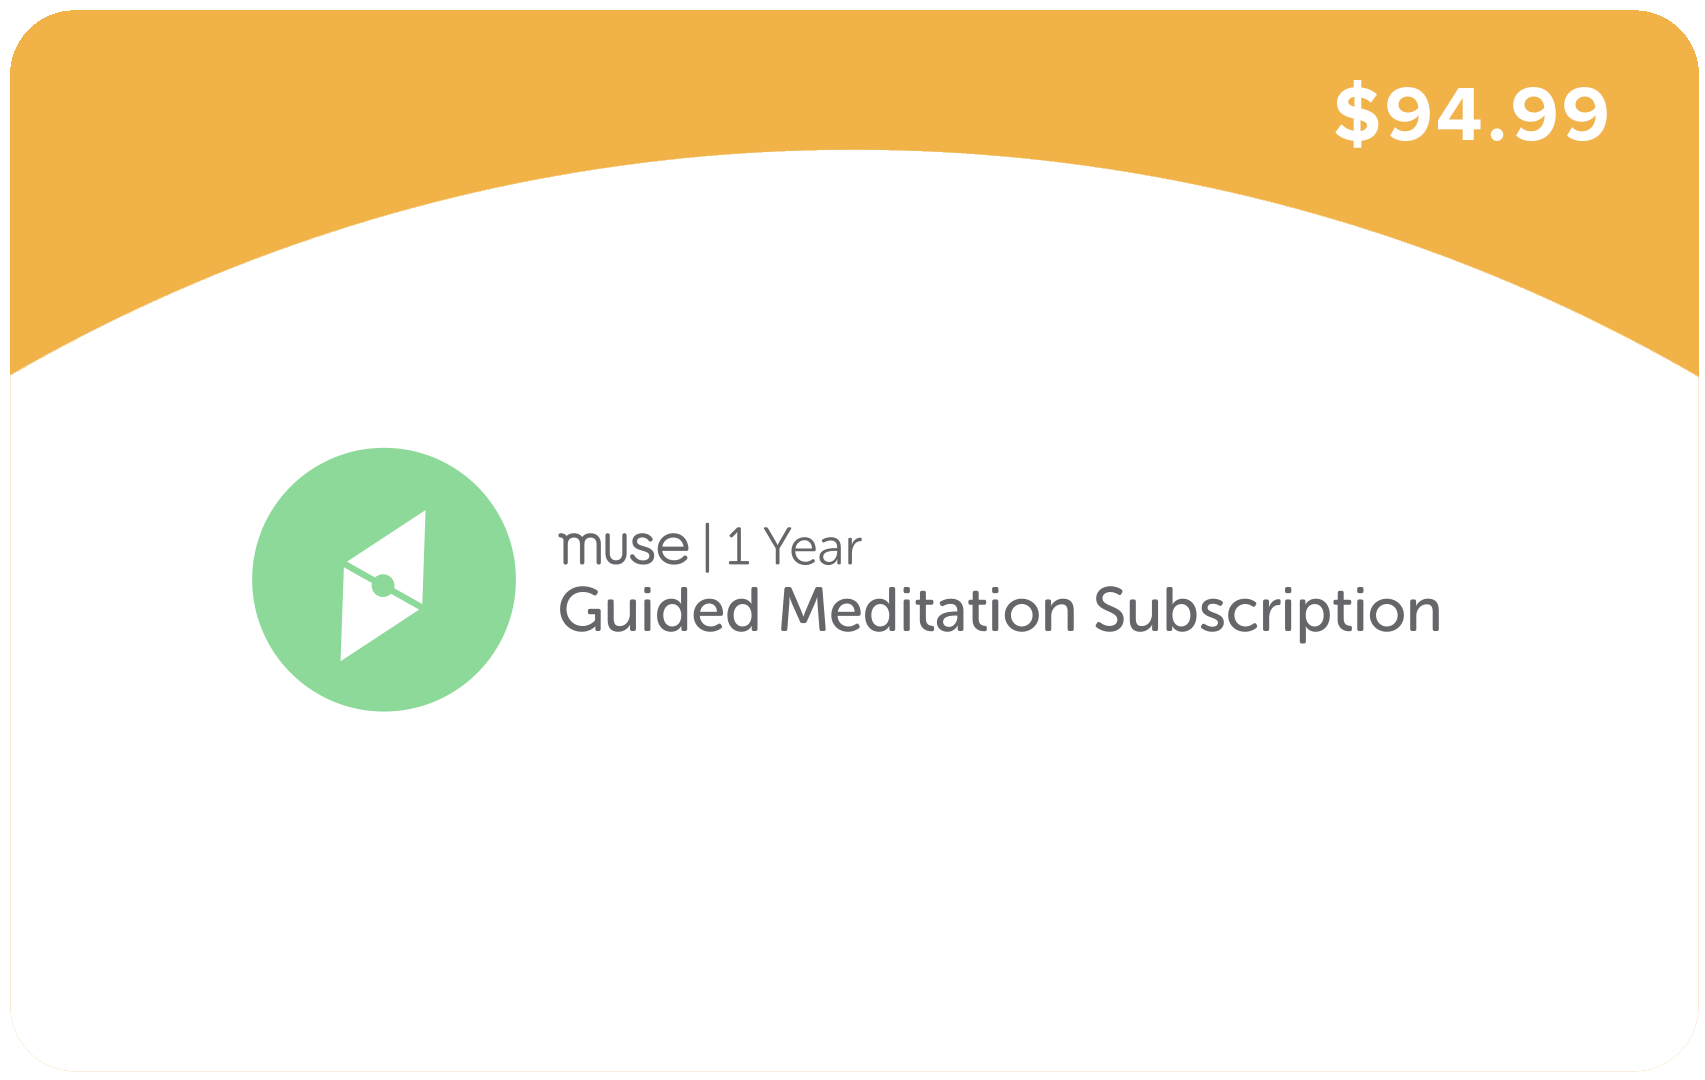 1 Year Guided Meditation Subscription